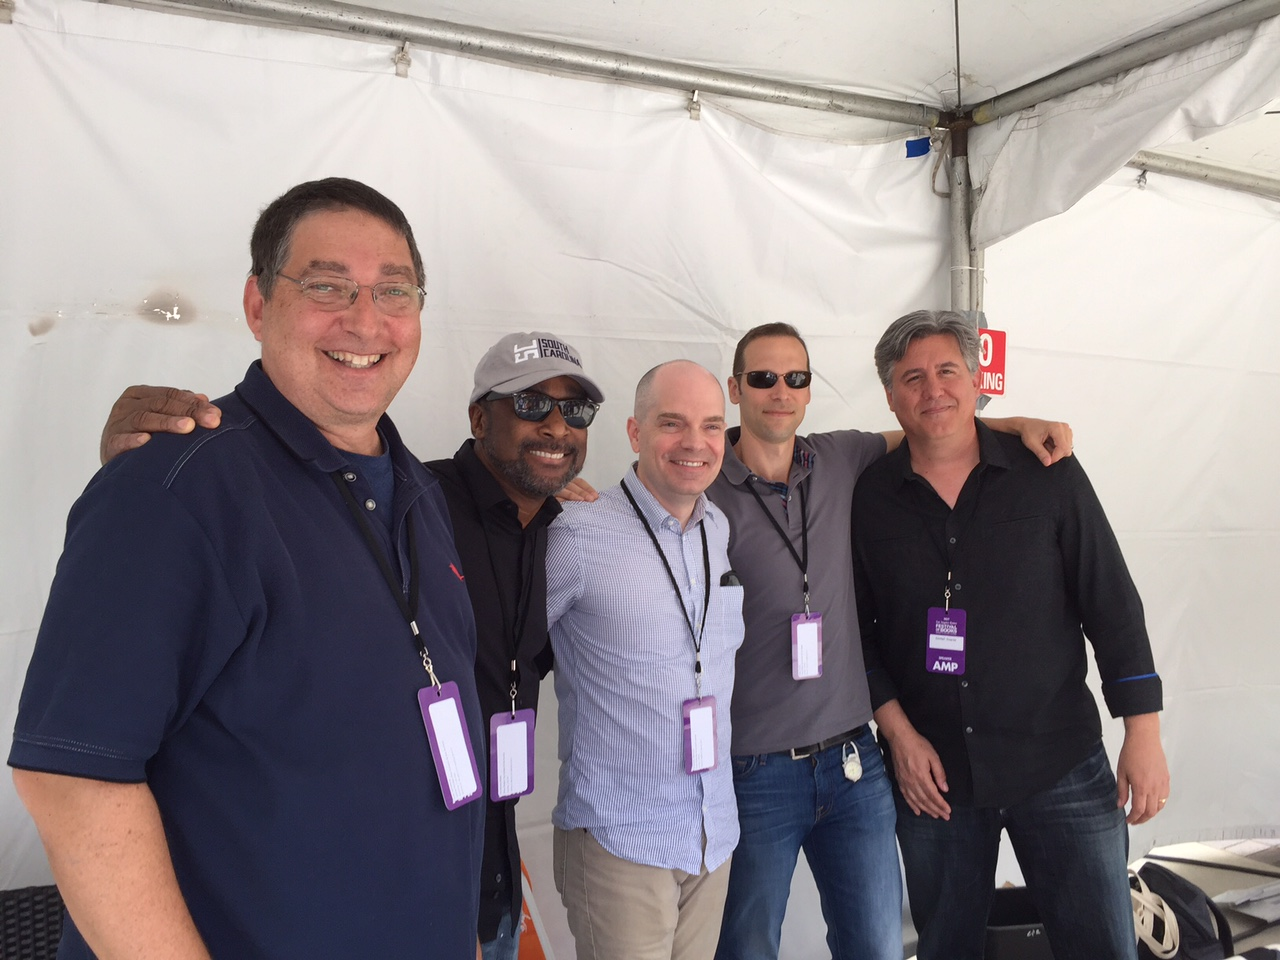 Lee with Eric Jerome Dickey, Chris Farnsworth, Gregg Hurwitz and Daniel Suarez at the LA Times Festival of Books 2017